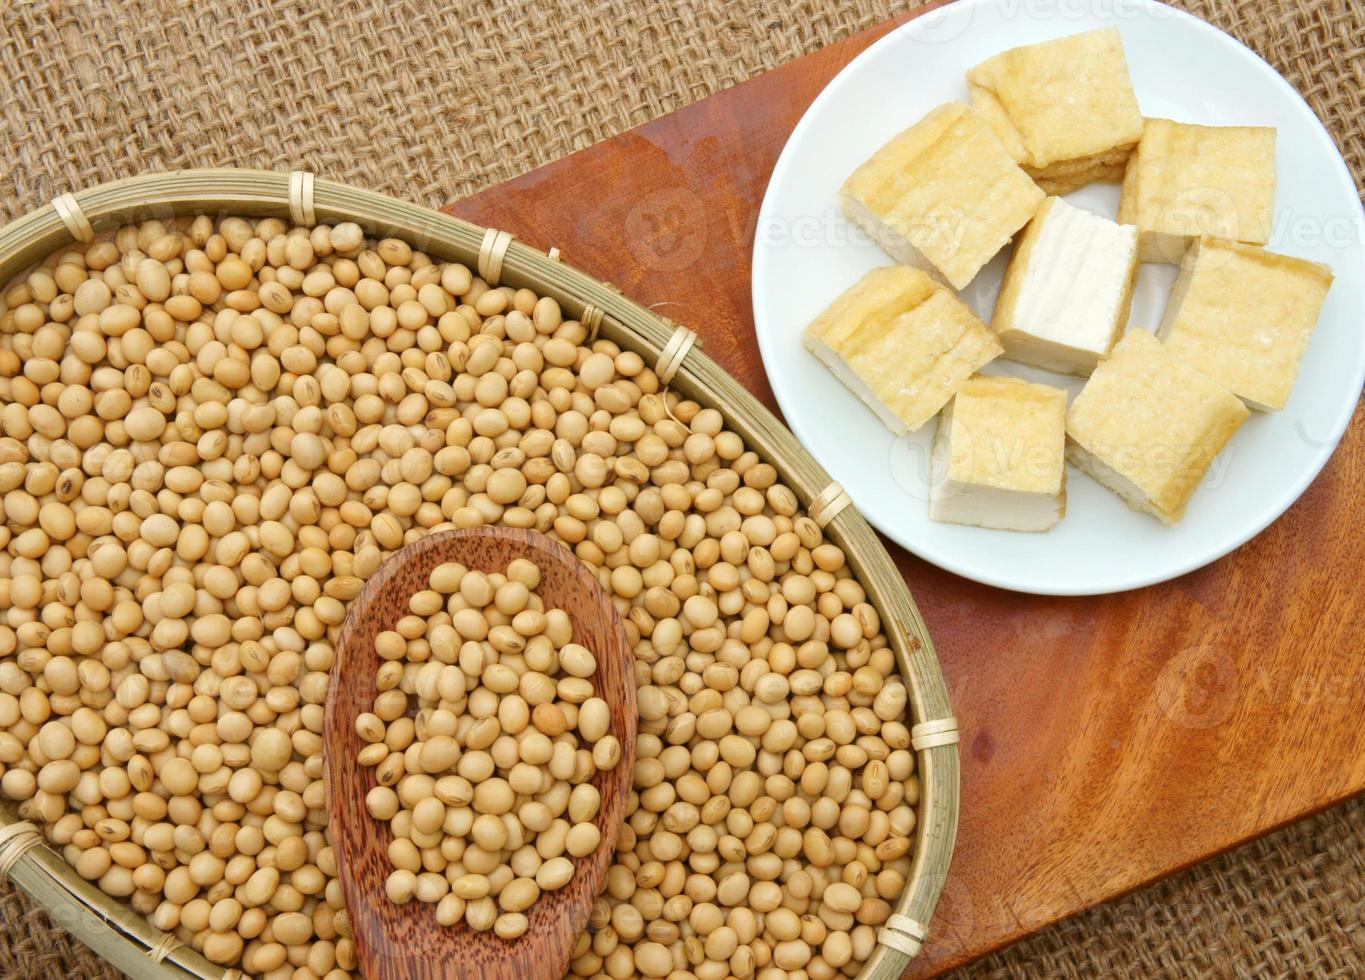 product from soybean photo